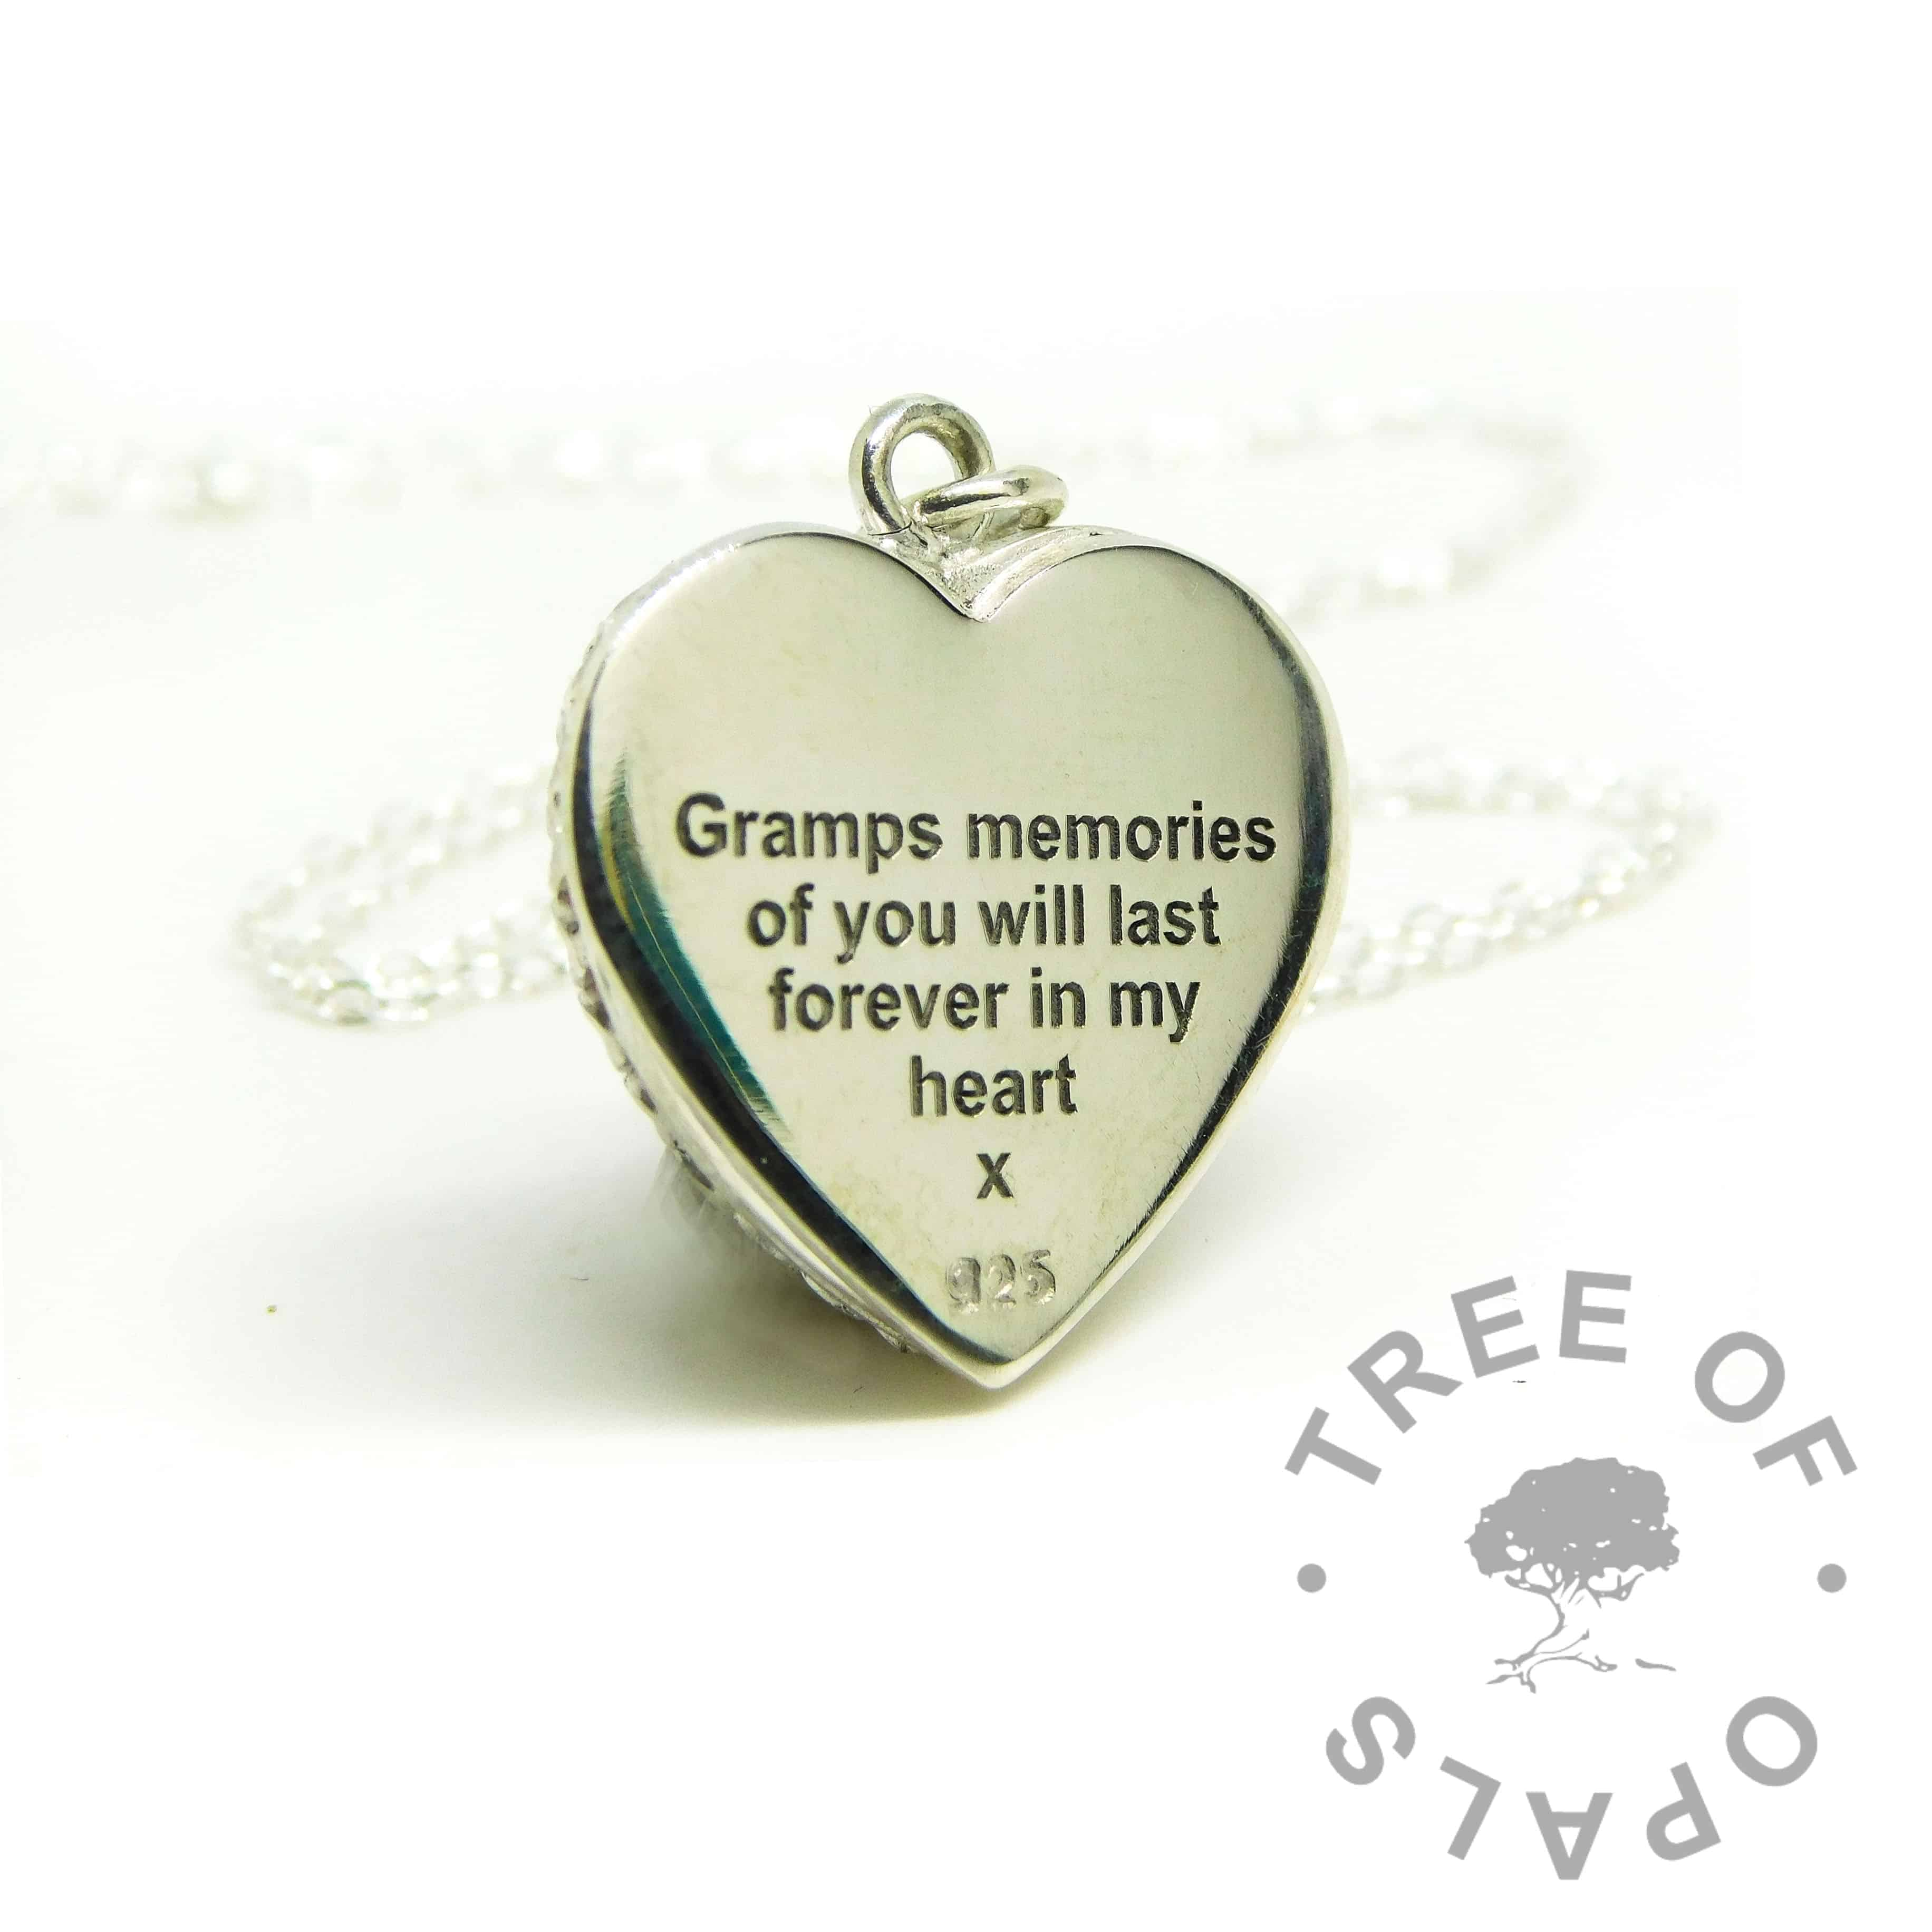 memories of you engraved heart necklace. Arial font